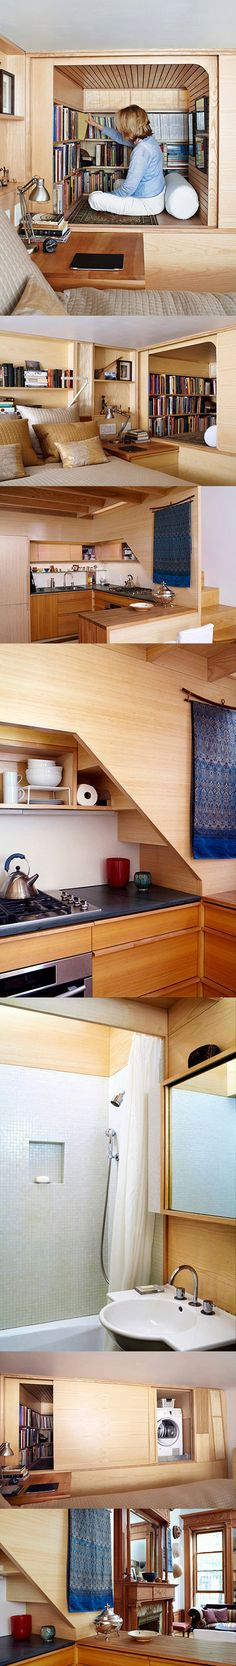 Faced with the challenge of a diminutive New York apartment in desperate need of a refresh, architect Tim Seggerman went straight to his toolbox to craft a Nakashima-inspired interior. The apartment, a 240-square-foot shoebox with a sleeping loft over the kitchen, was in dismal shape, without a true line or flush surface. The entire apartment is a master class in finish carpentry: There are cabinets of cypress and bamboo; a gently chamfered ash-and-beech staircase; flooring of quartered…